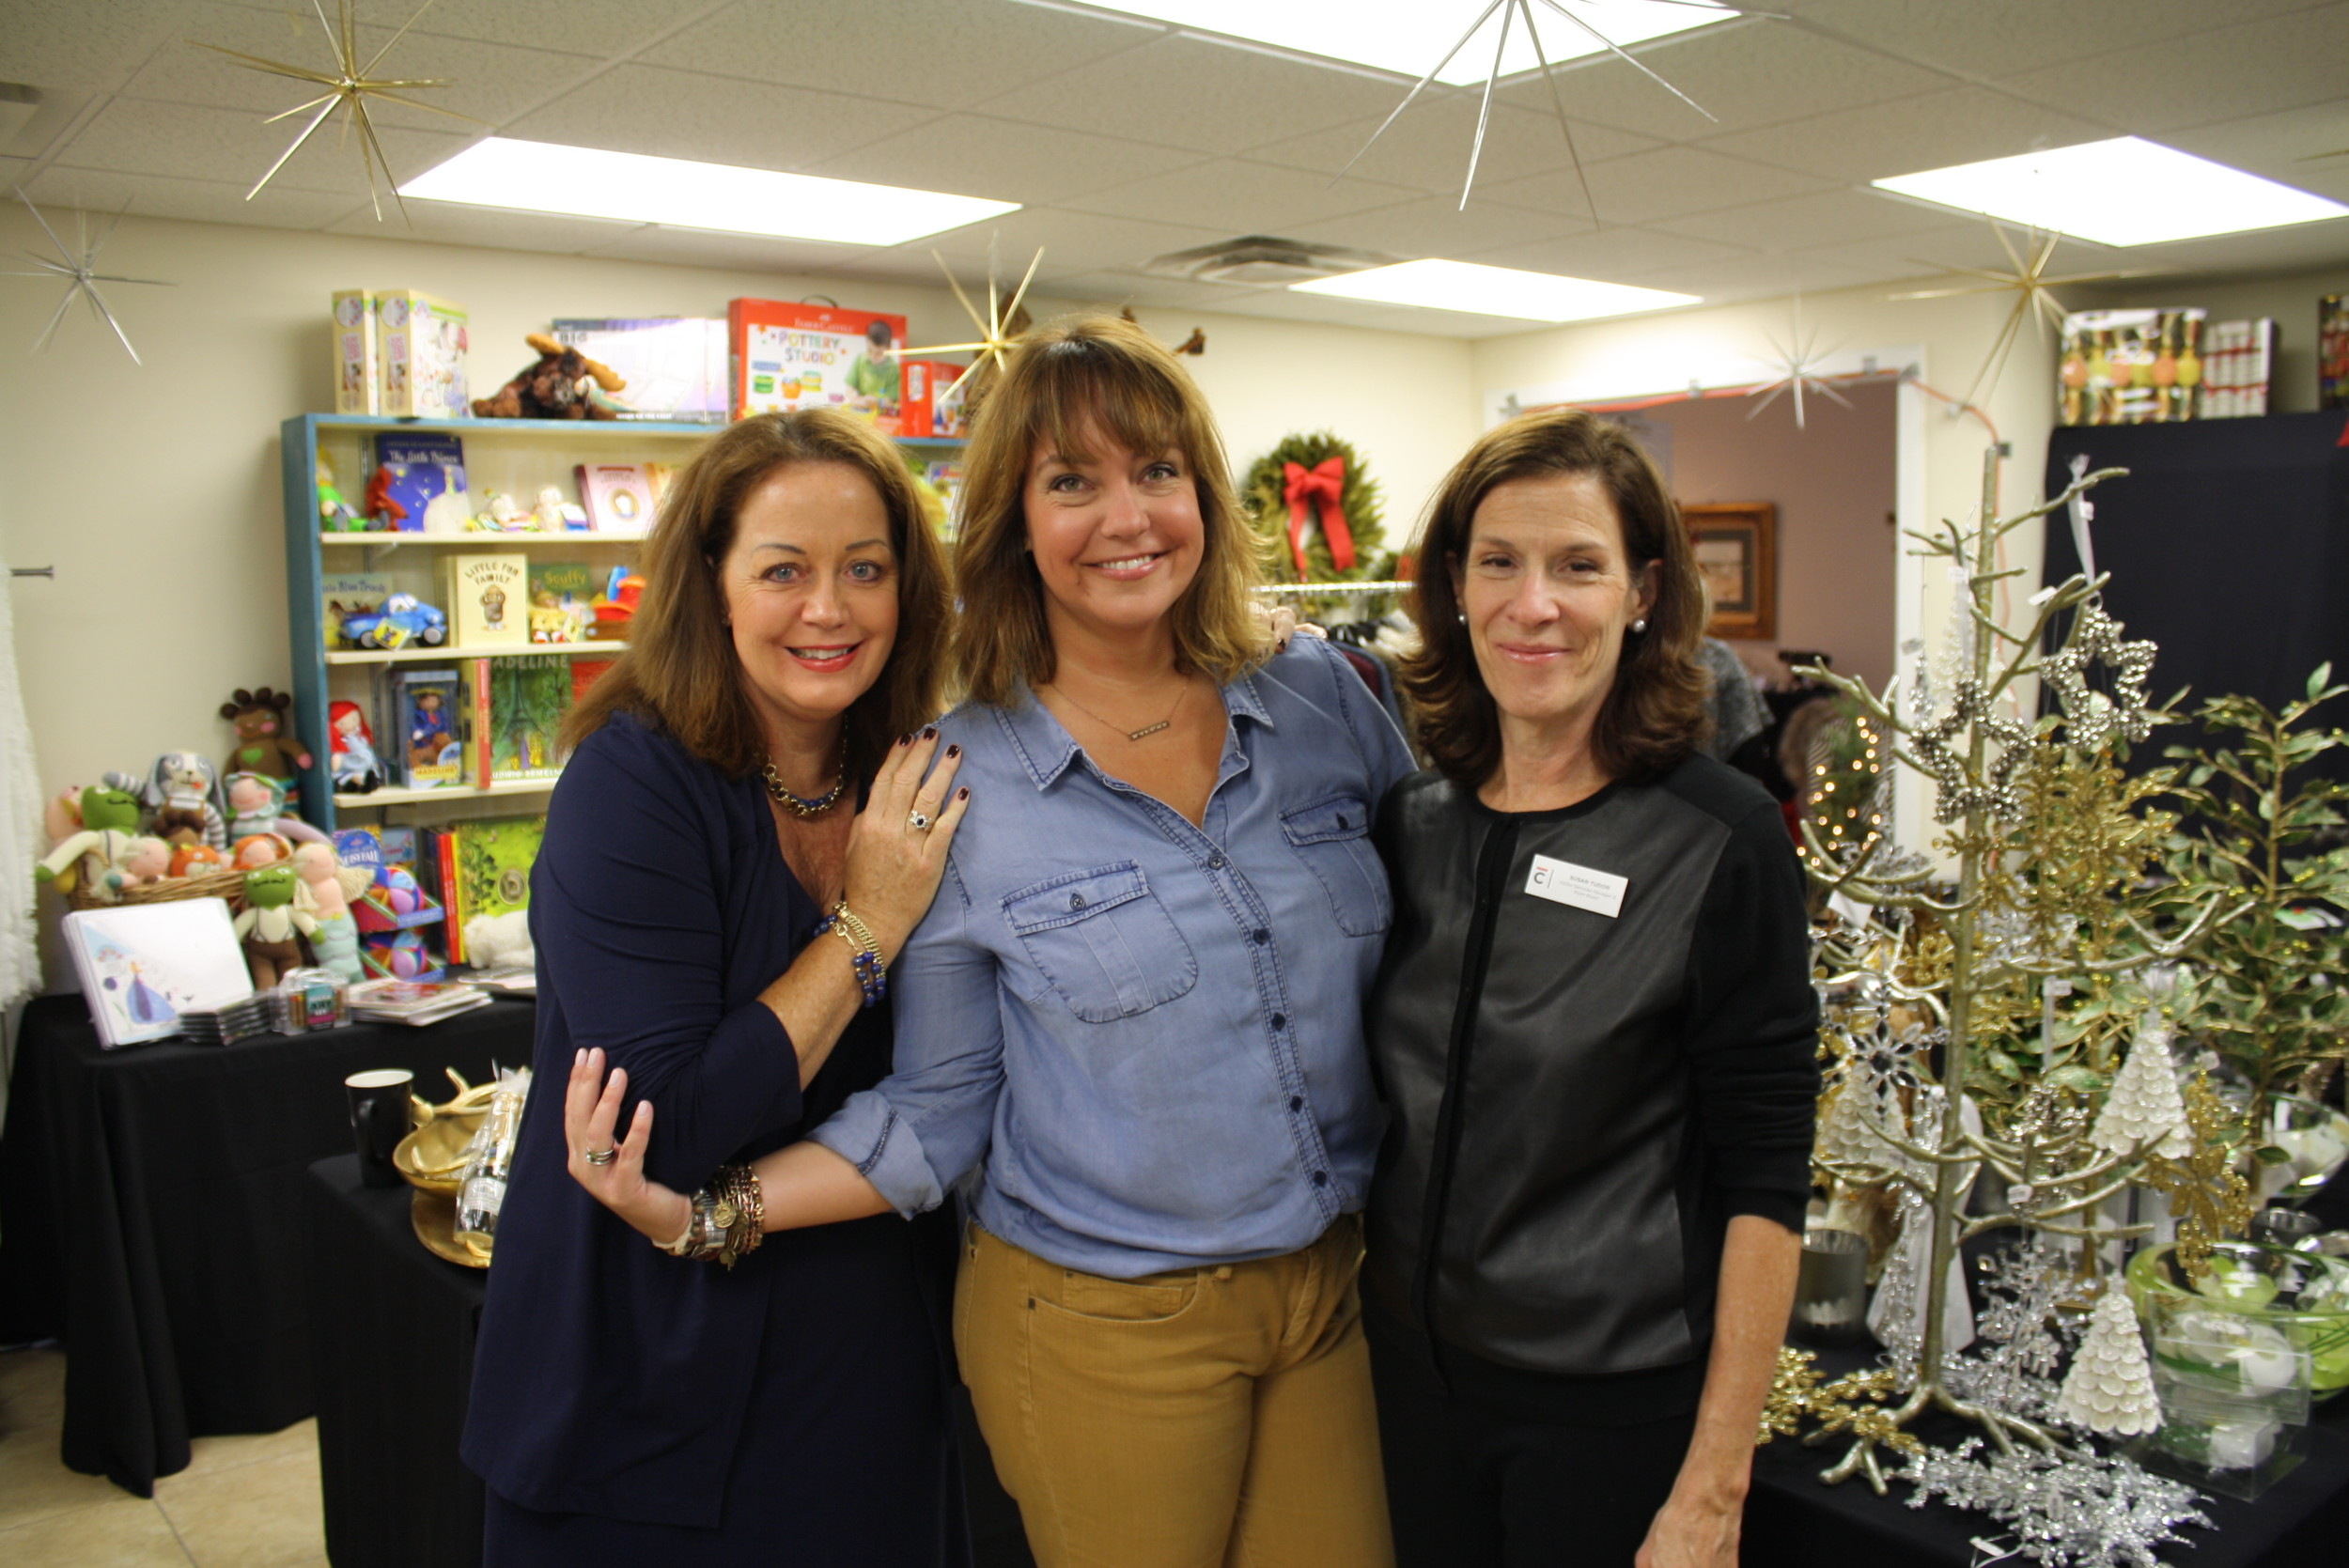 Stefanie Robinson (owner of Flashes of Brilliance and Holiday Shoppes committee member), Toni Boudreaux (CCPVB Director of Development) and Susan Tudor (Manager of Visitor Services & Store Buyer for the Cummer Museum of Art & Gardens).